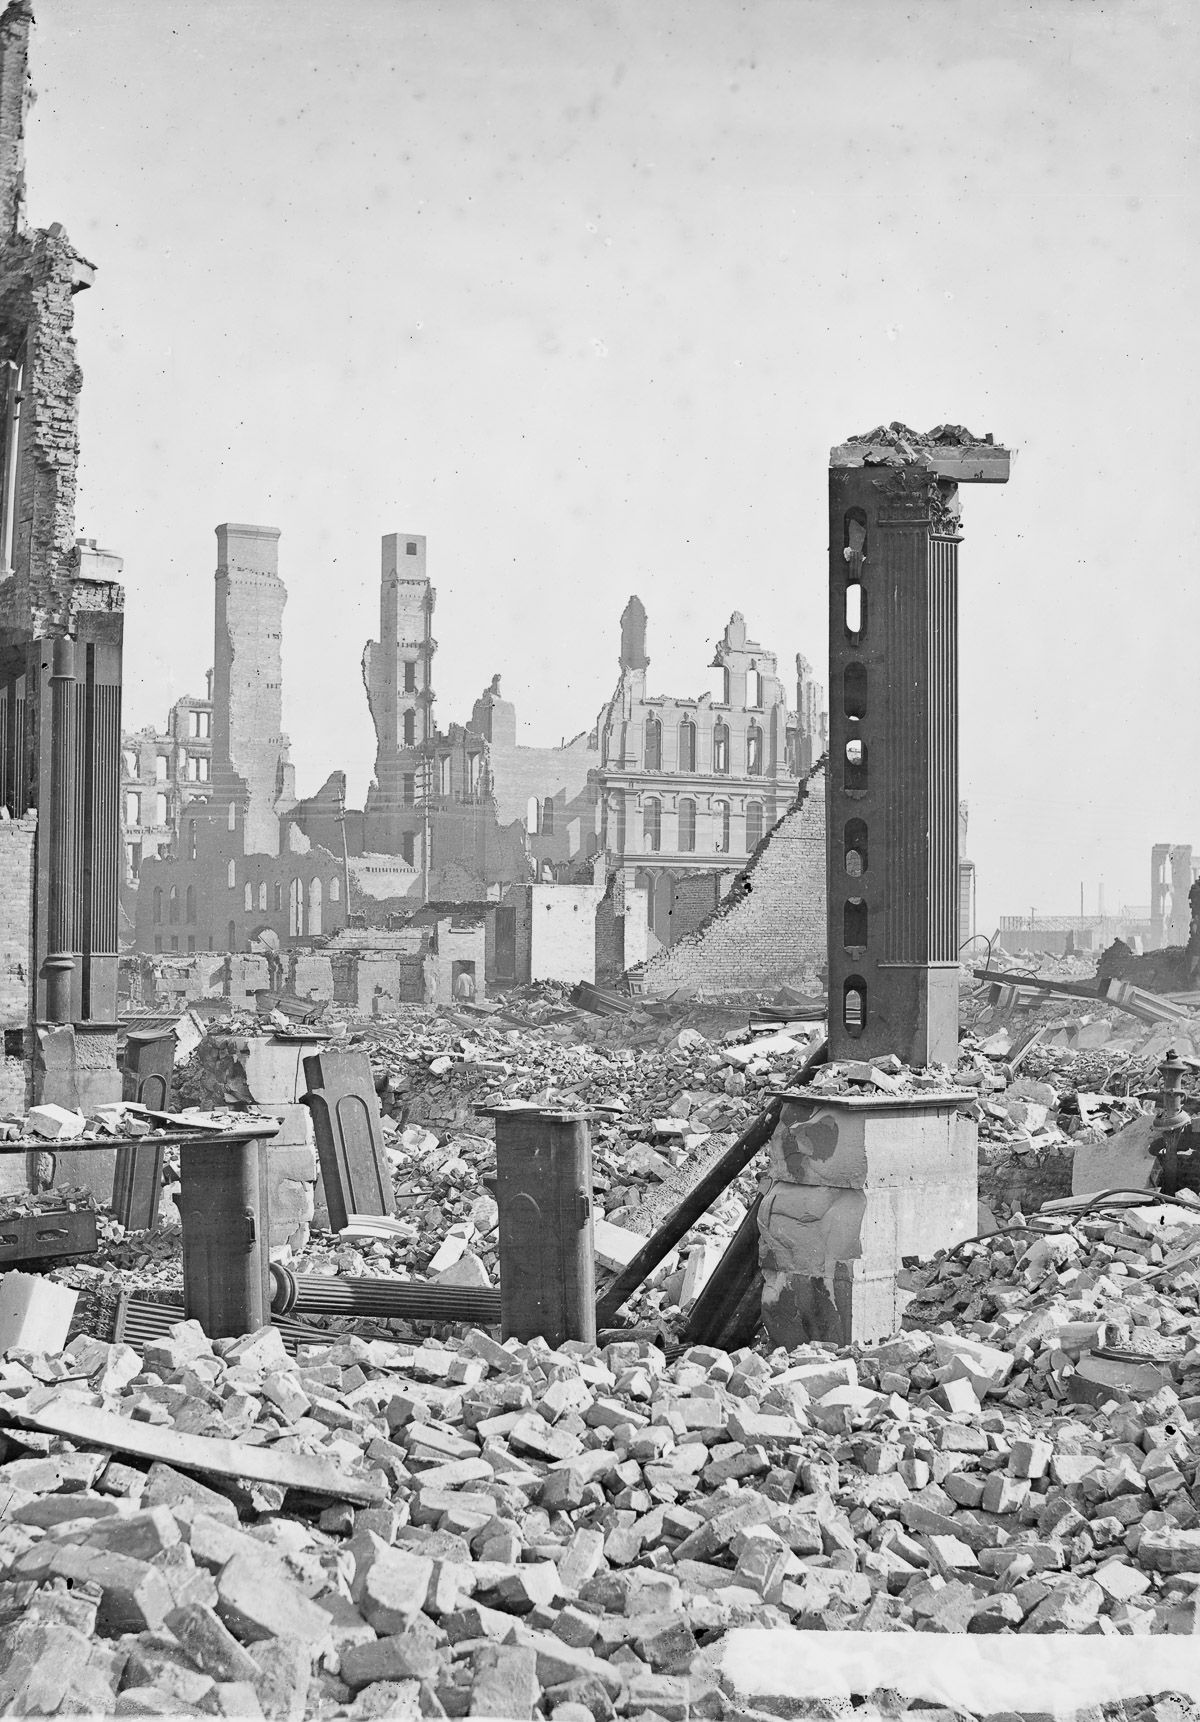 Chicago In Ruins The Unimaginable Aftermath Of The Great Fire Of 1871 Chicago Pictures The Great Fire Chicago History